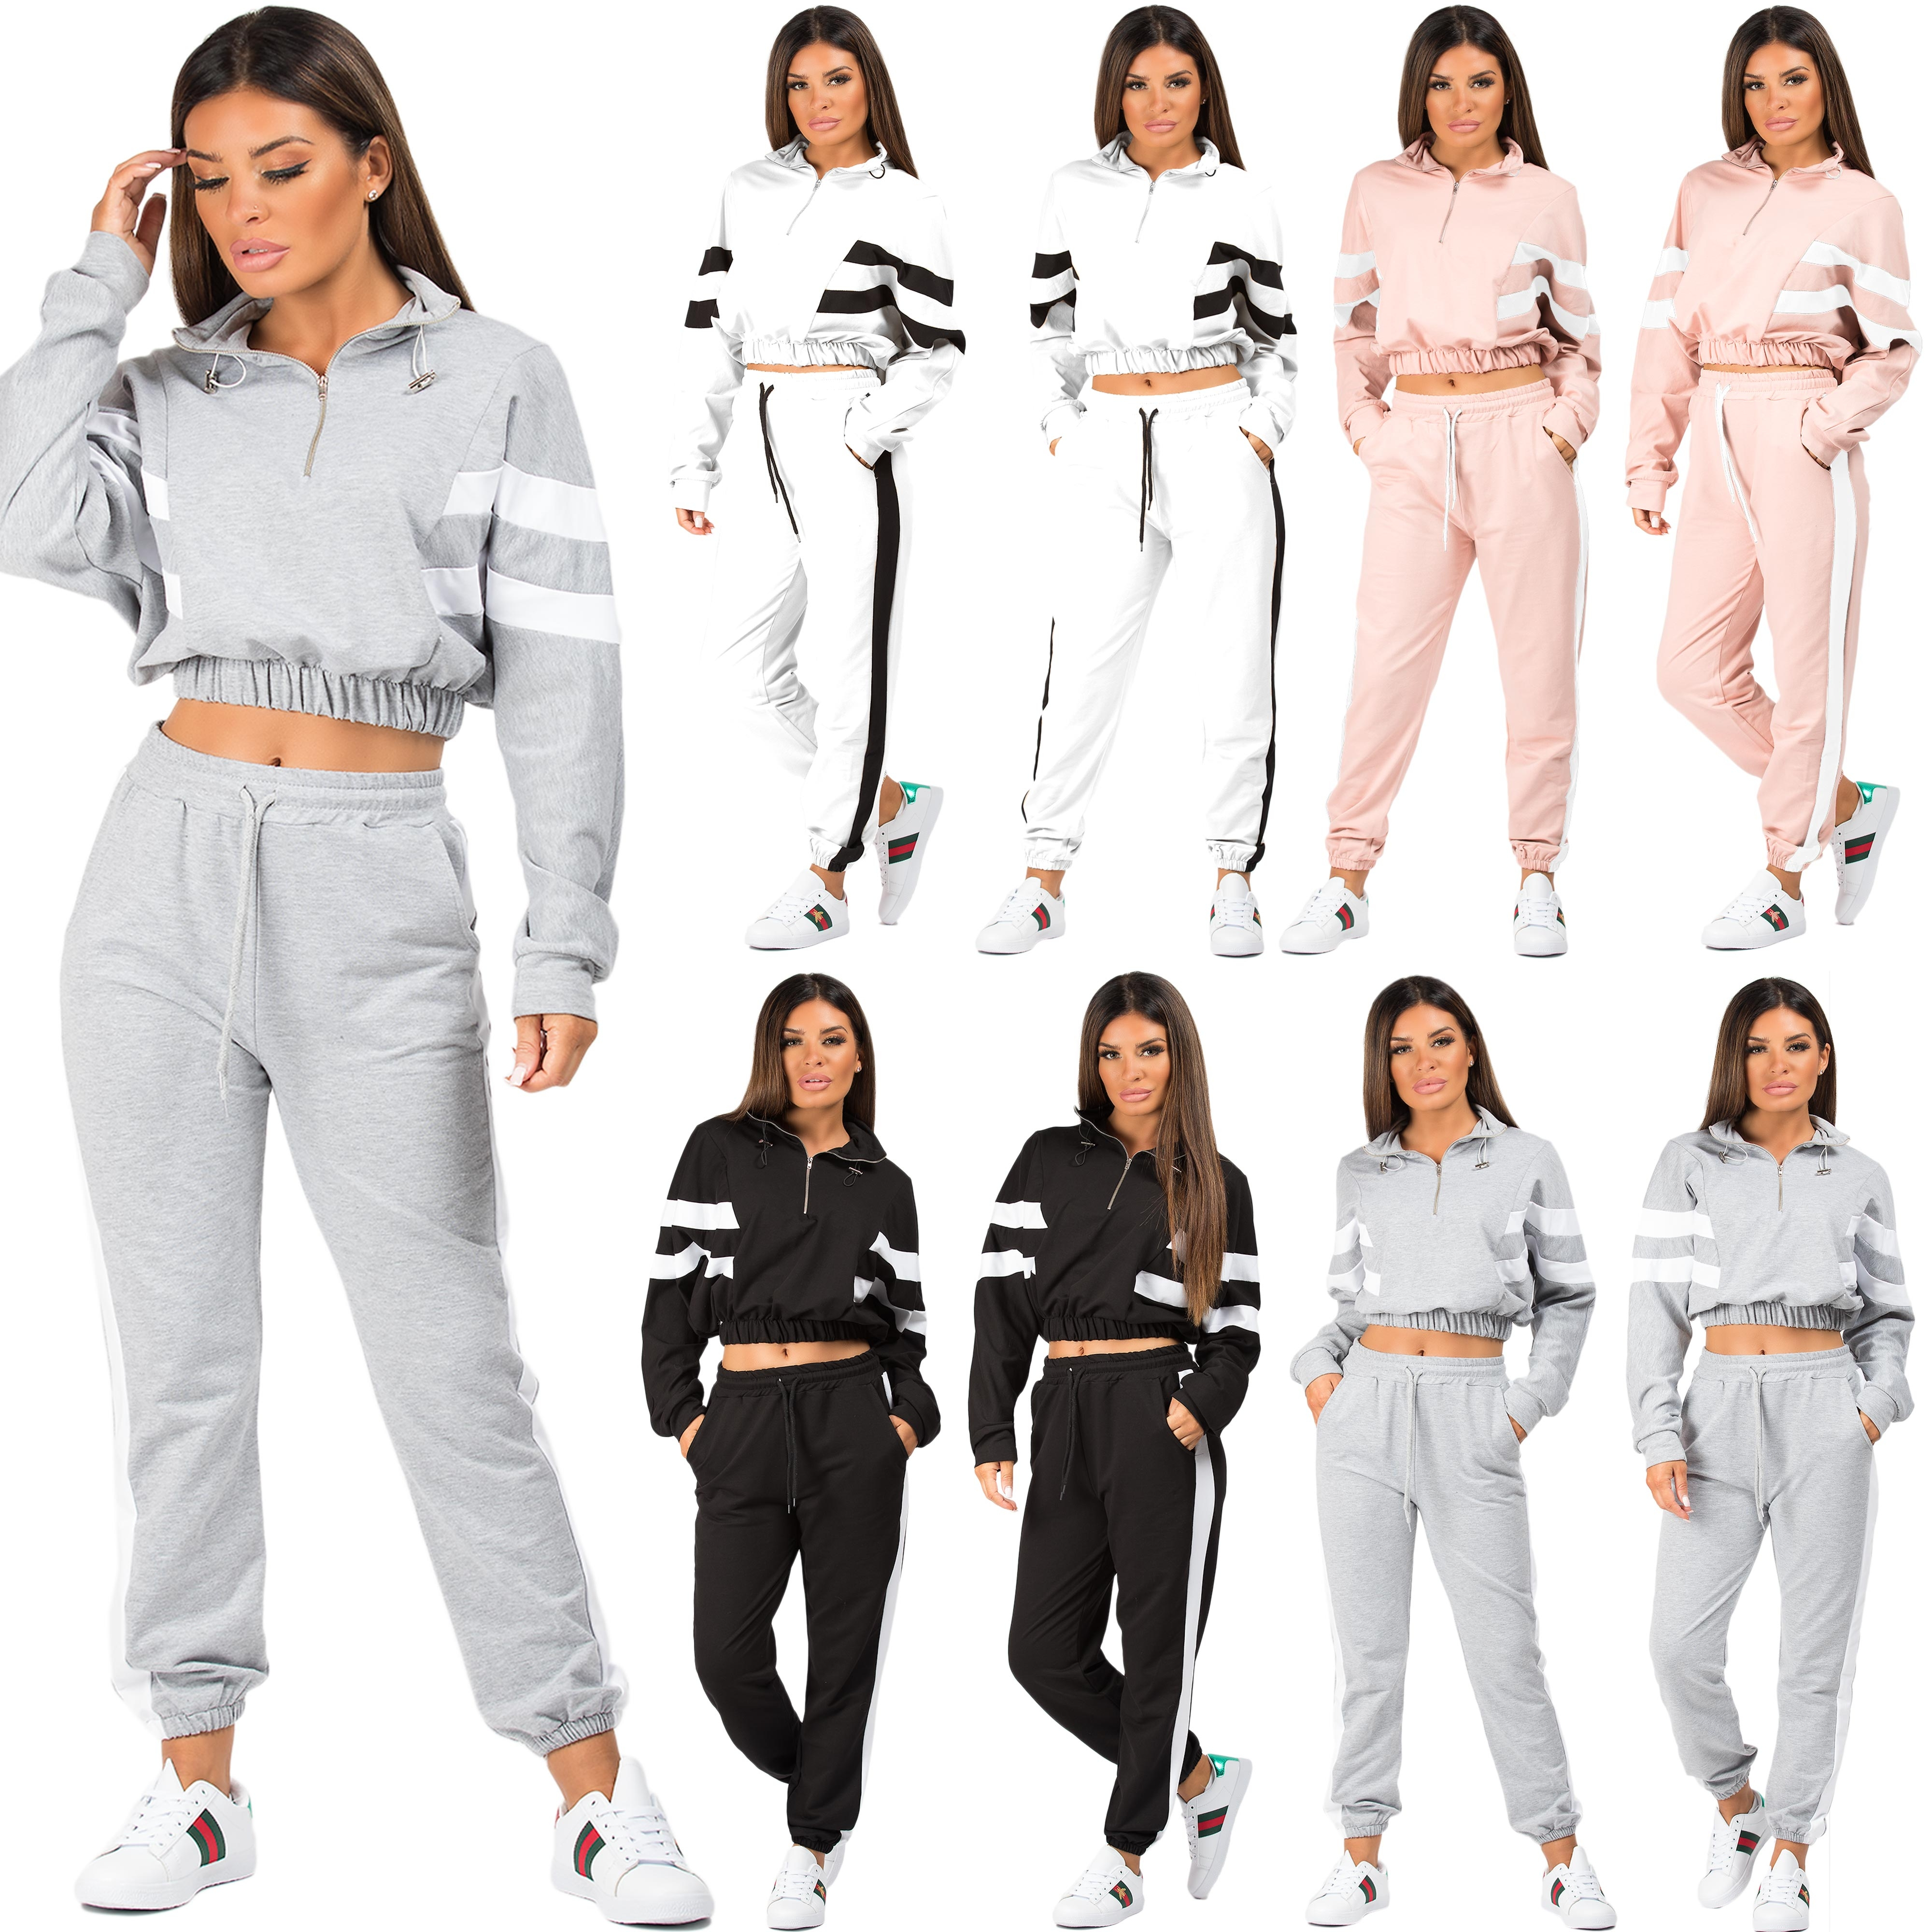 Ladies Womens Contrast Side Stripes Long Sleeve Pockets Loungewear Tracksuit Set